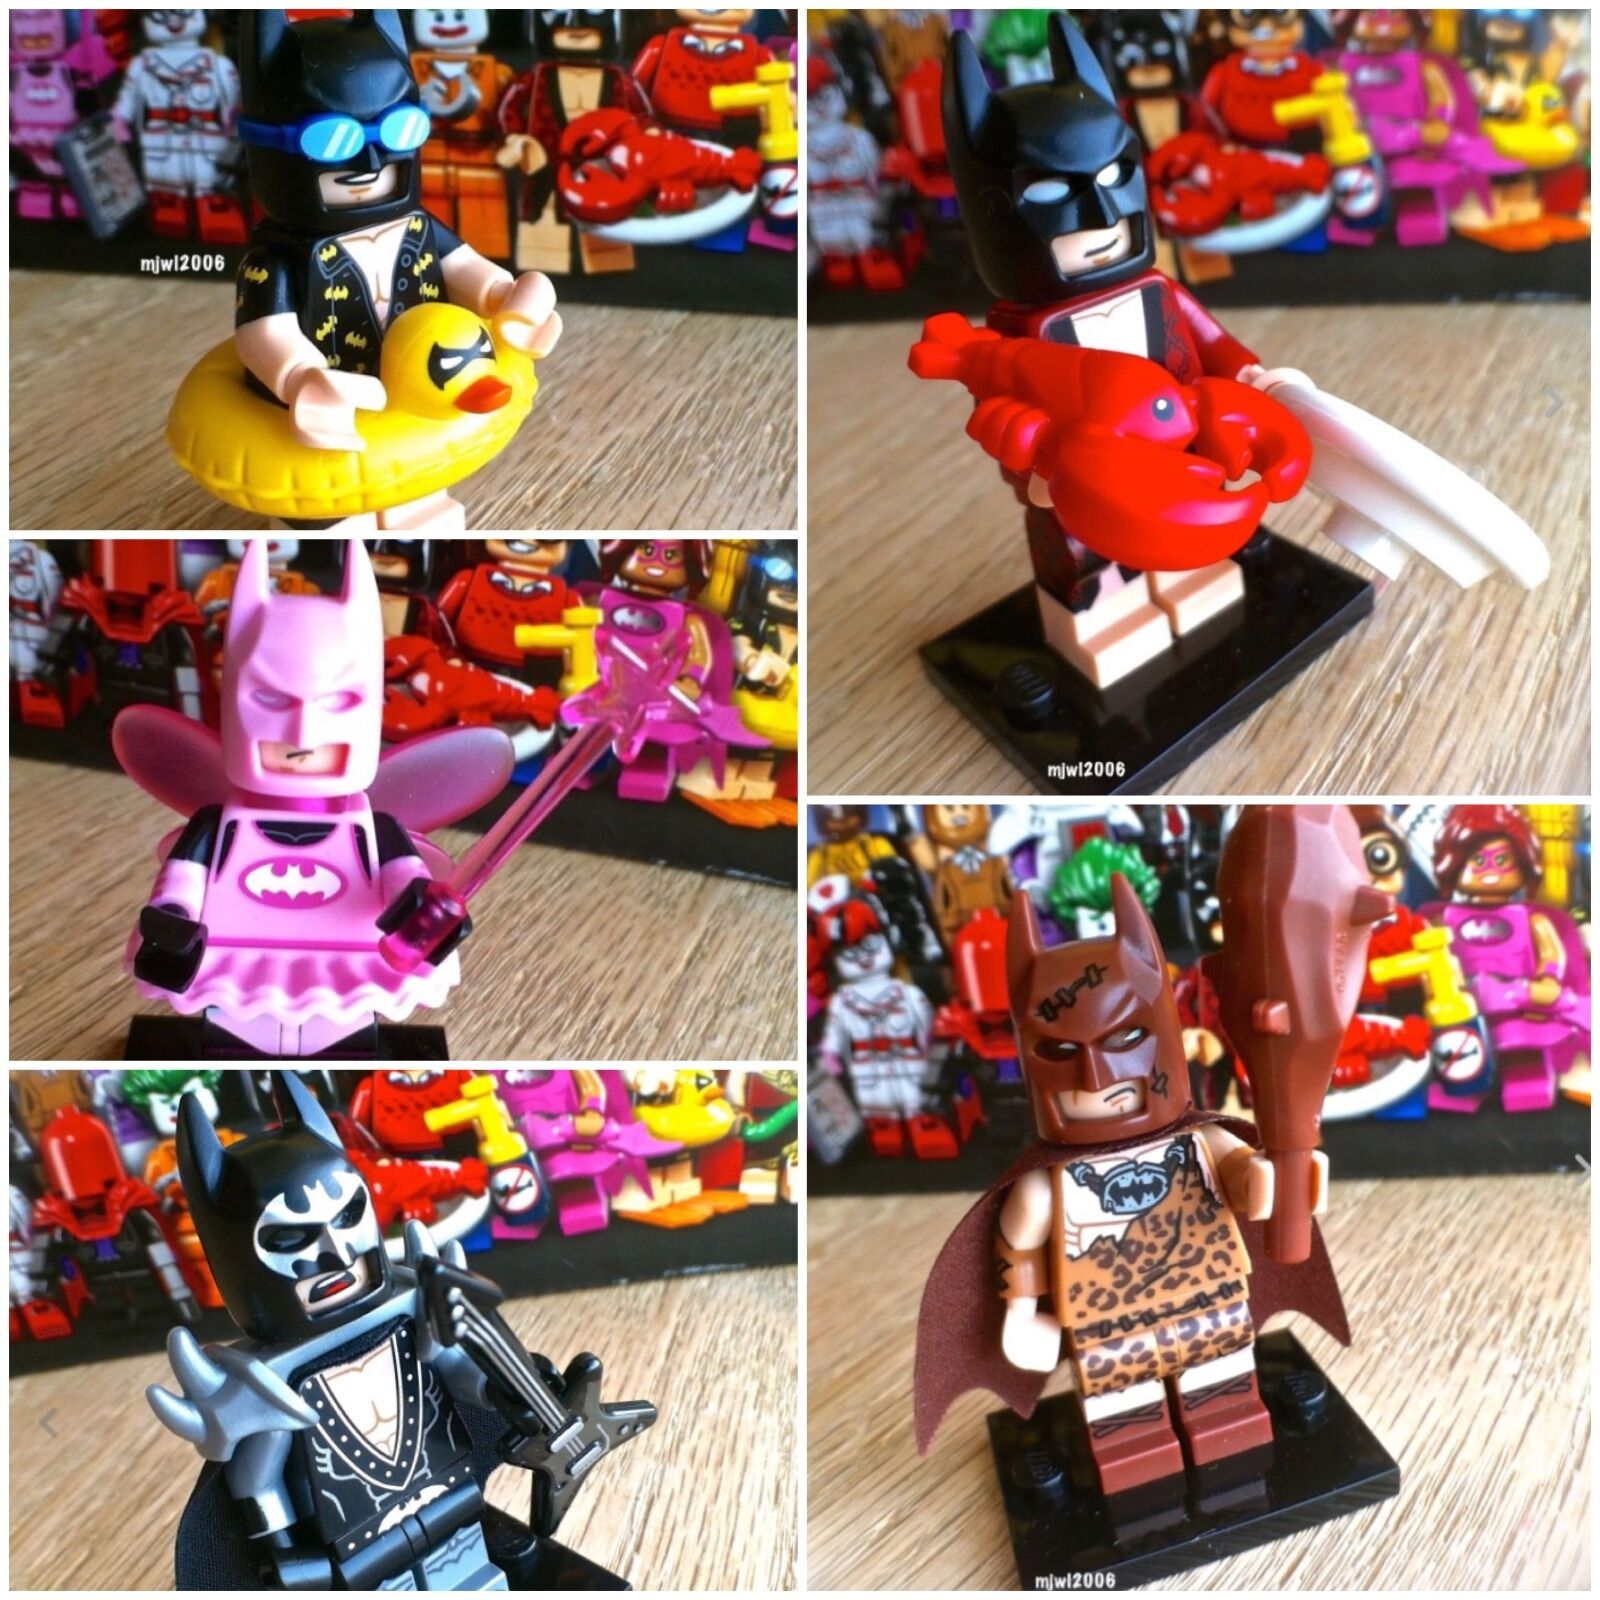 negozio a basso costo 71017 THE LEGO LEGO LEGO BATuomo MOVIE Lobster Glam Fairy Caveuomo Vacation 5Minifigs SEALED  alta qualità genuina